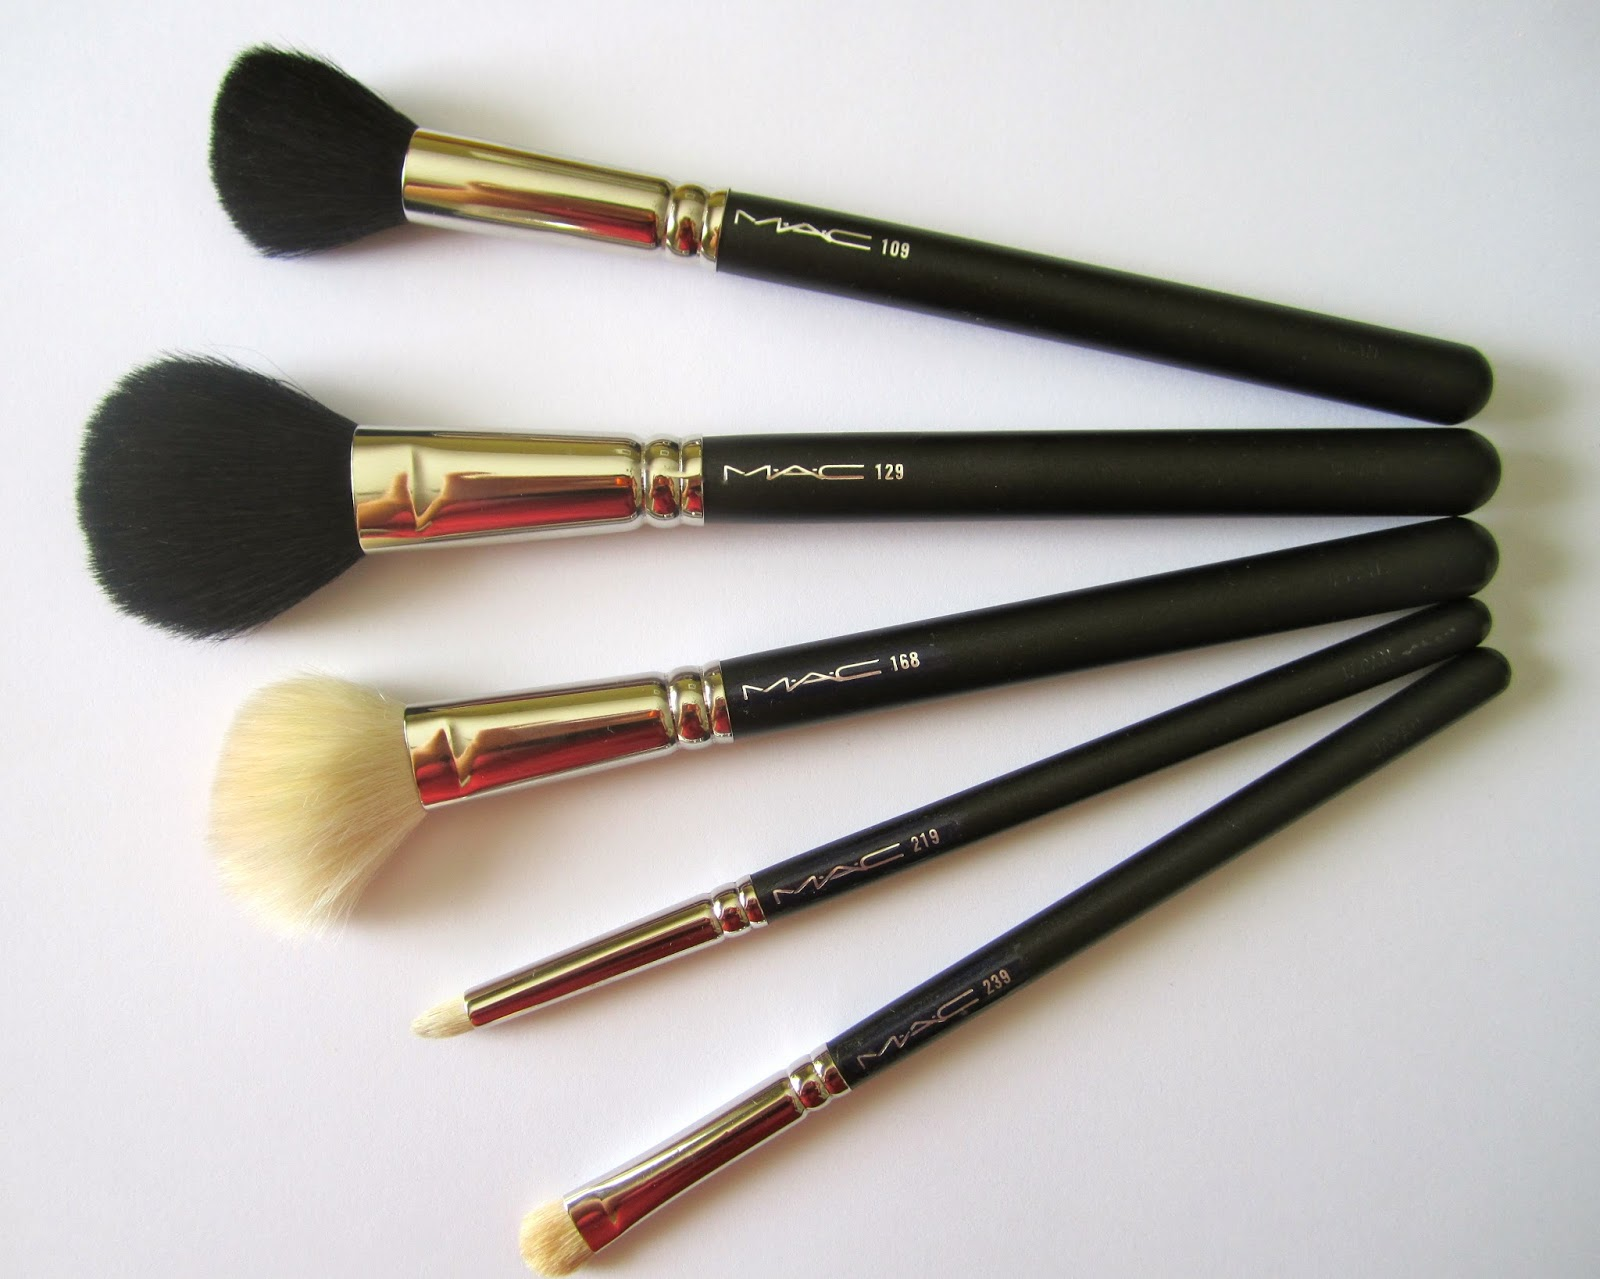 Beauty, Bites & Adorations: My MAC Brush Collection - #109 ...